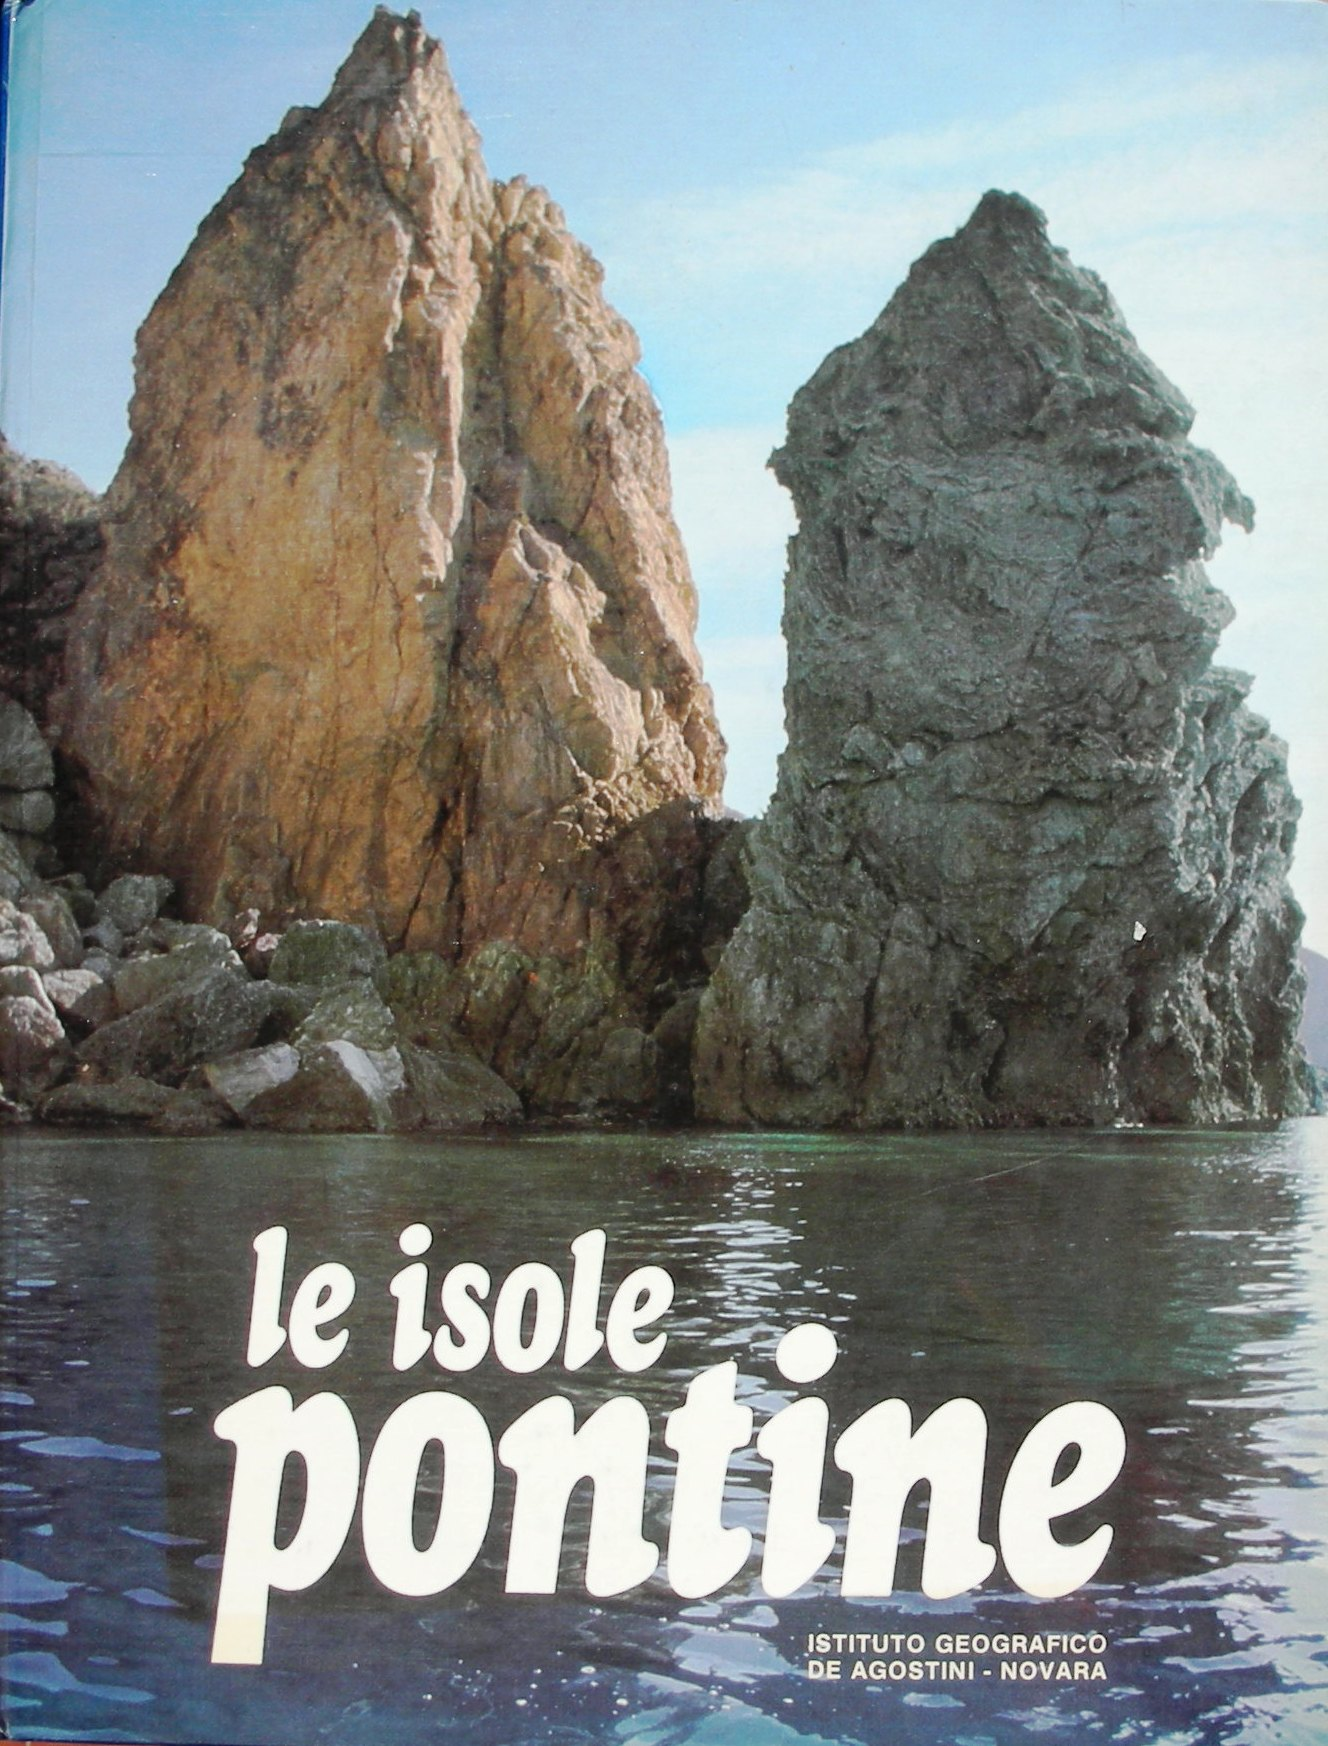 Le isole pontine